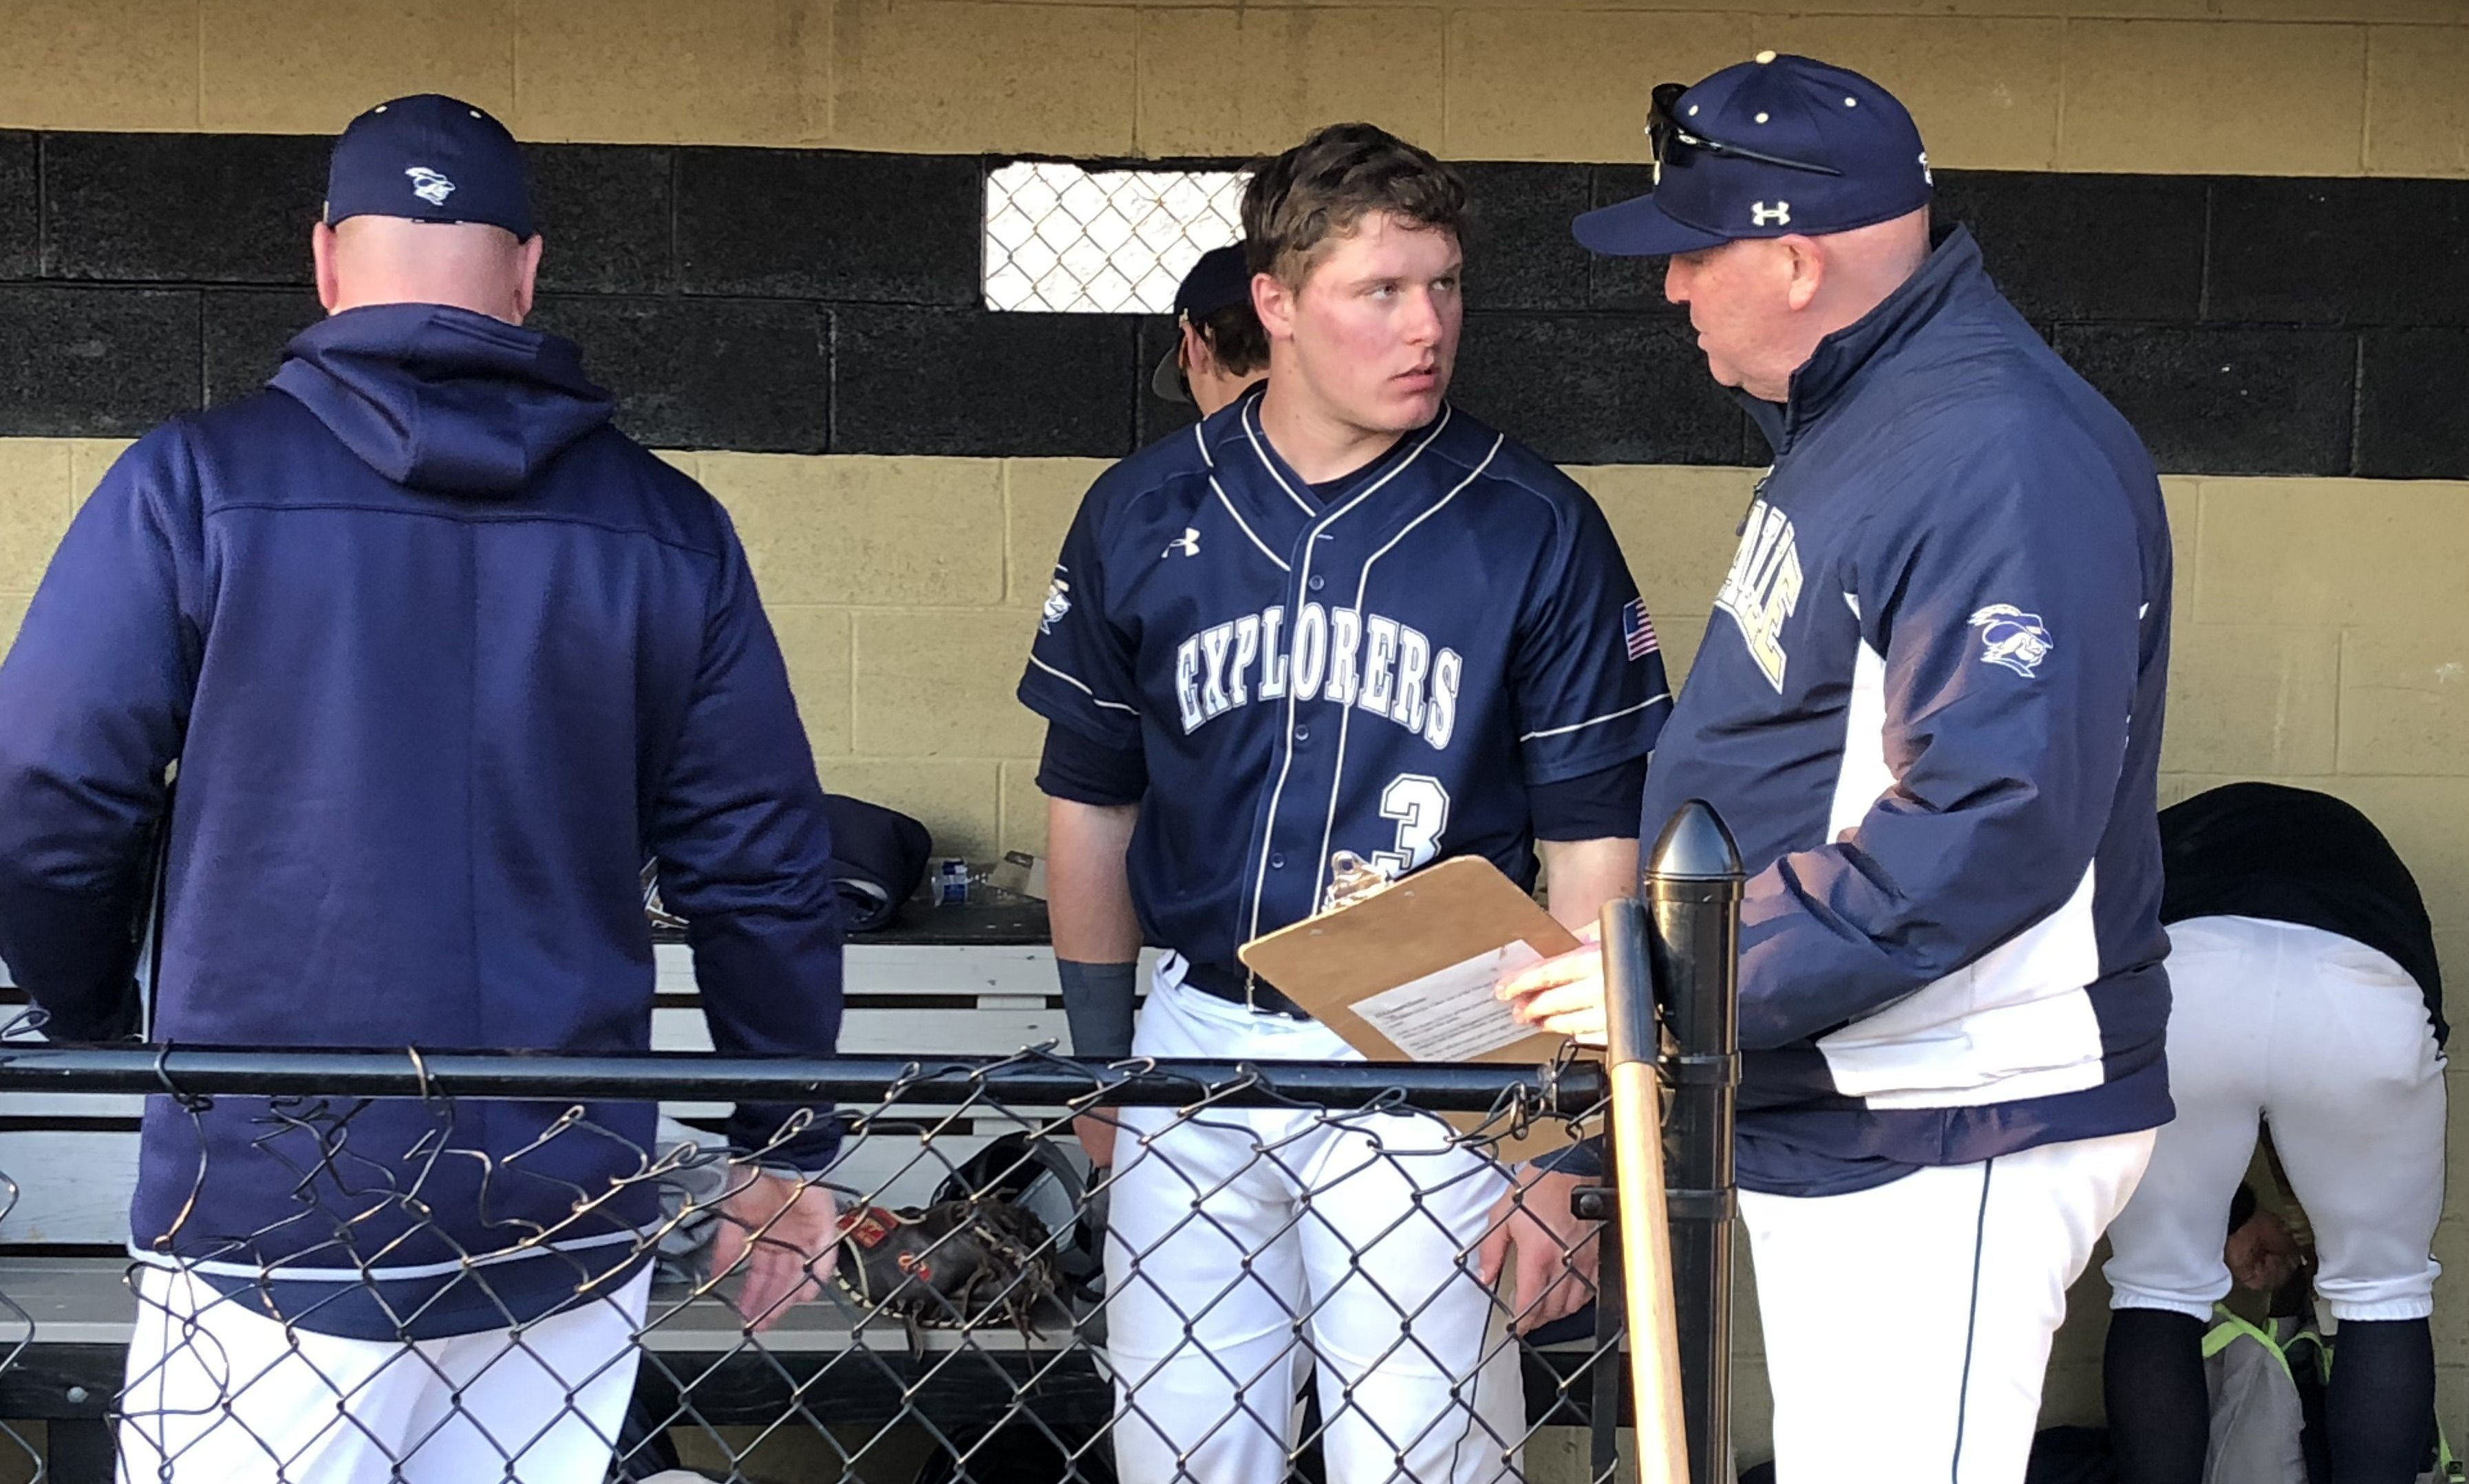 La Salle catcher Andrew Cossetti talks in the dugout with assistant coach Mike O´Connor. #submittedImage